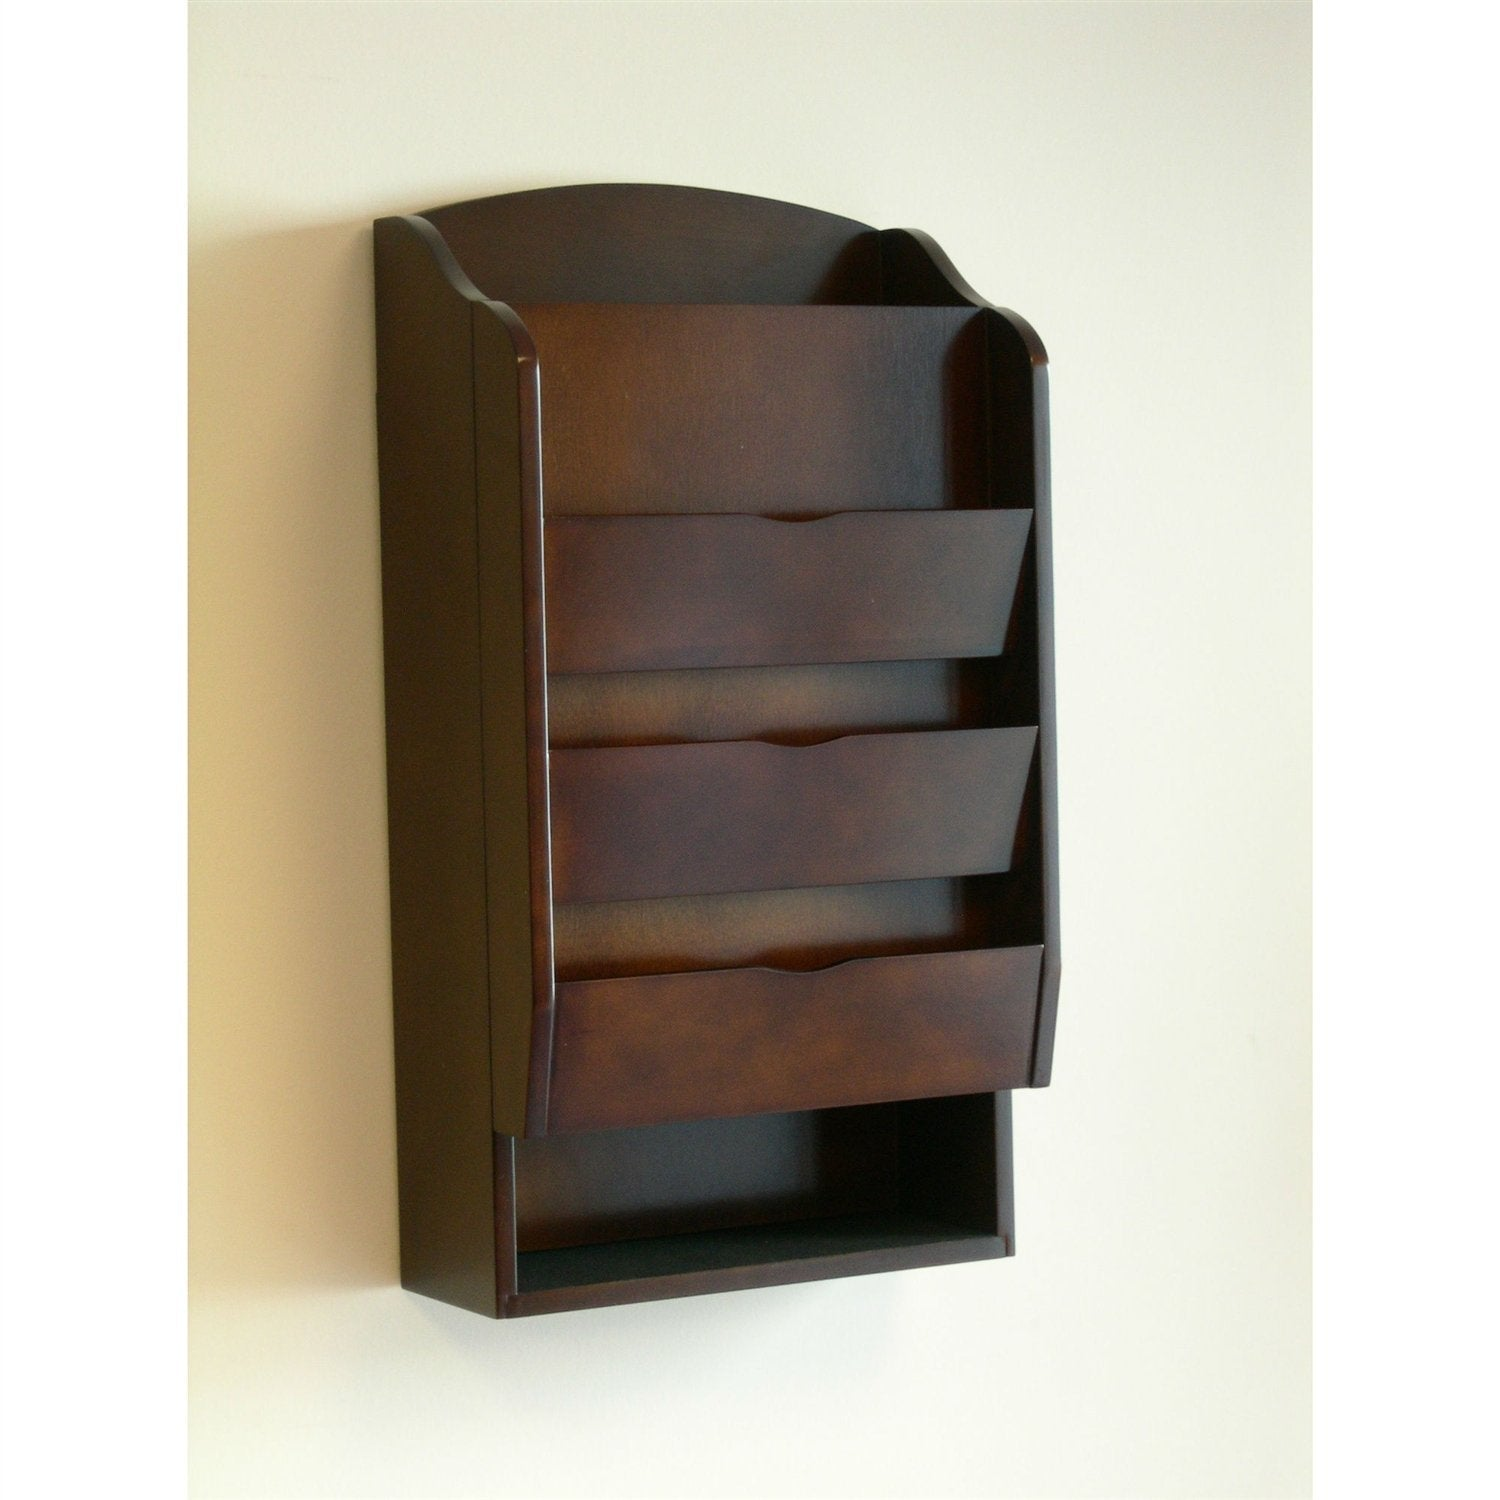 Door / Wall Mount Organizer Letter Holder Mail Sorter in Dark Walnut